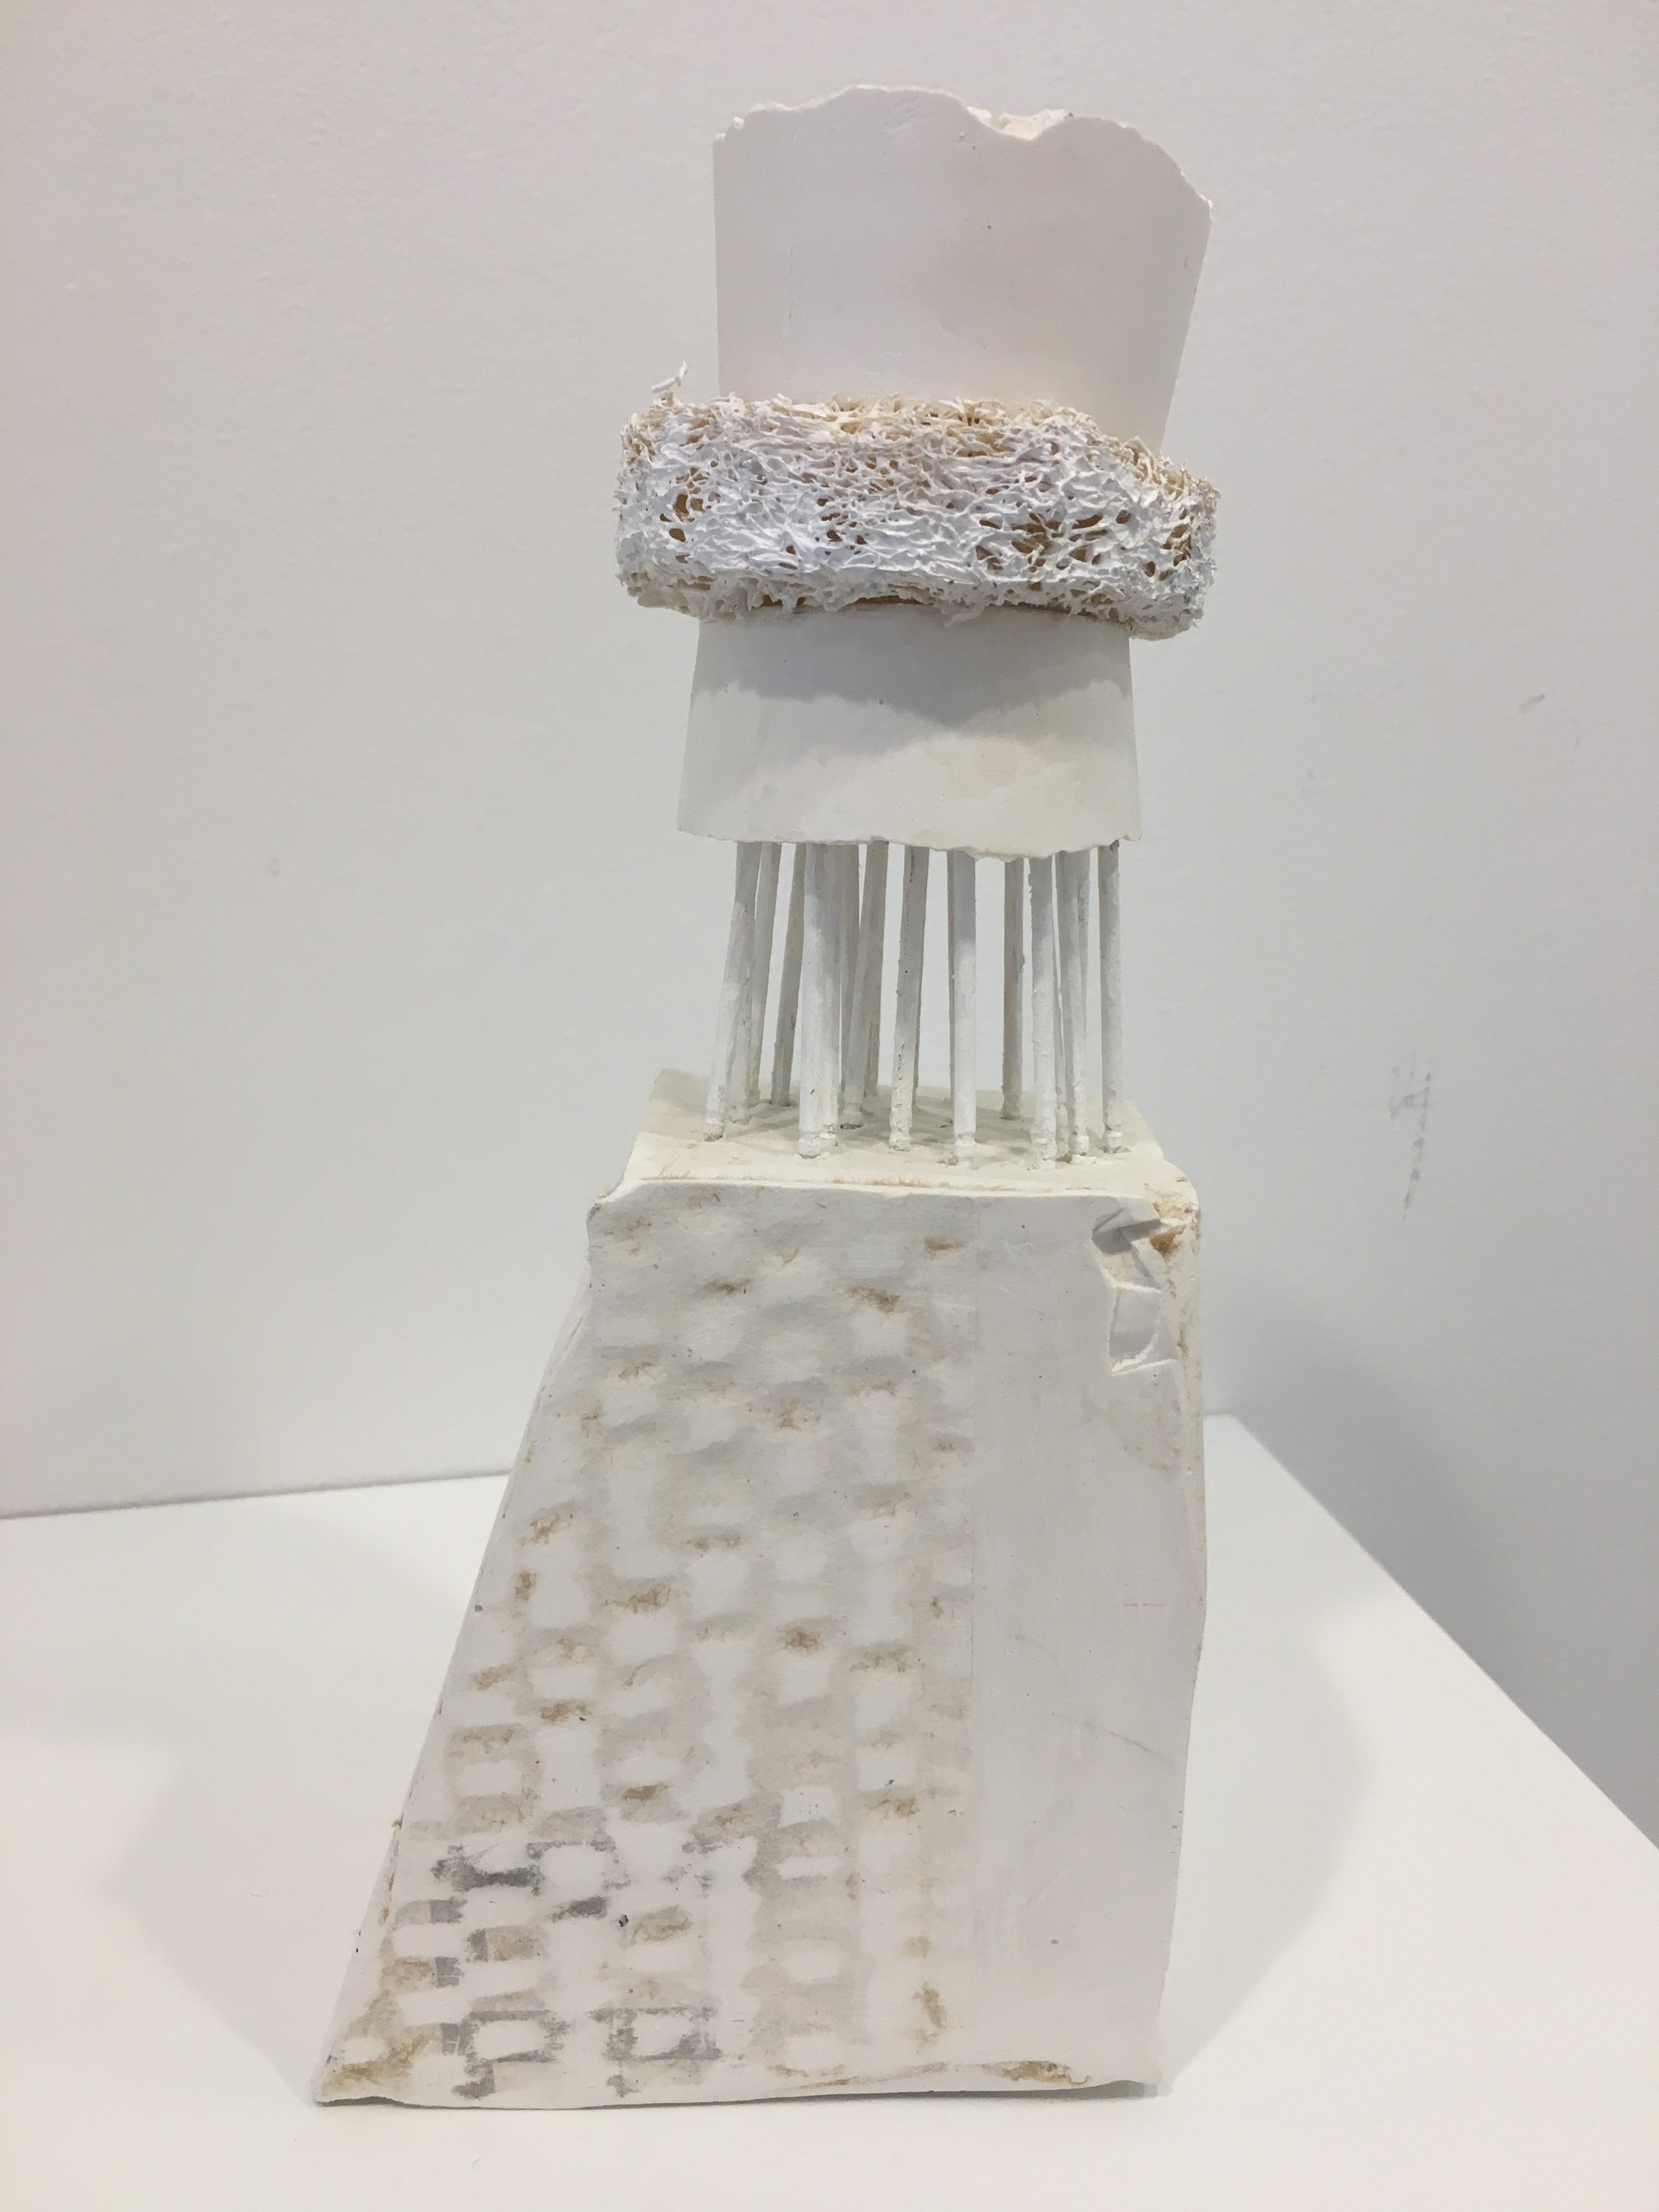 White Tower, 2016. Plaster, wooden sticks and loofah, 8x3 3/4x 2 3/4 in.